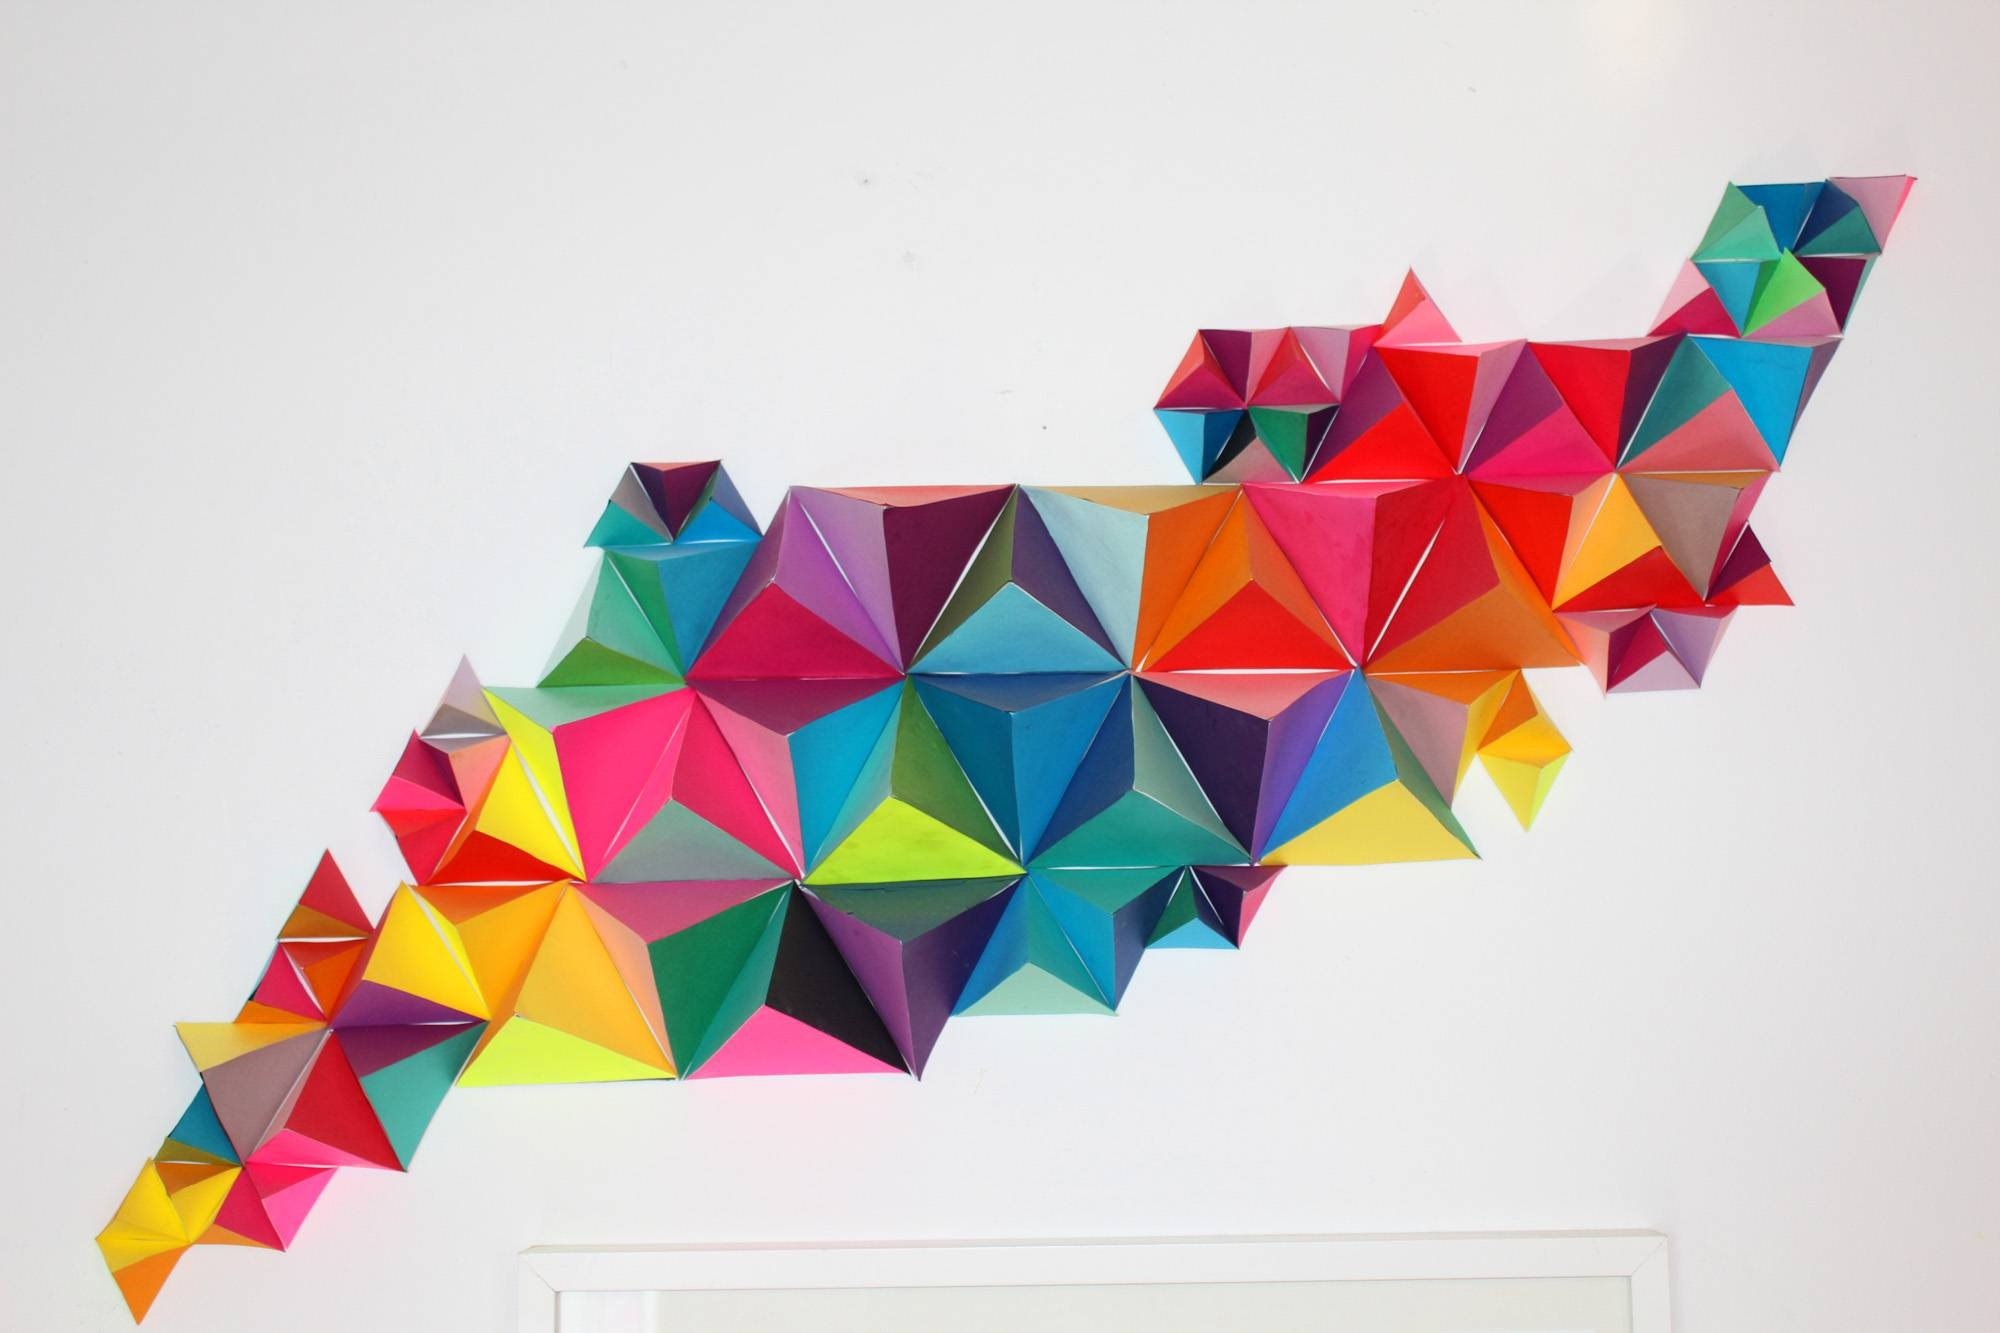 3D Geometric Wall Sculpture Sm | Make: Diy Projects And Ideas For Intended For Most Up To Date 3D Triangle Wall Art (View 6 of 20)